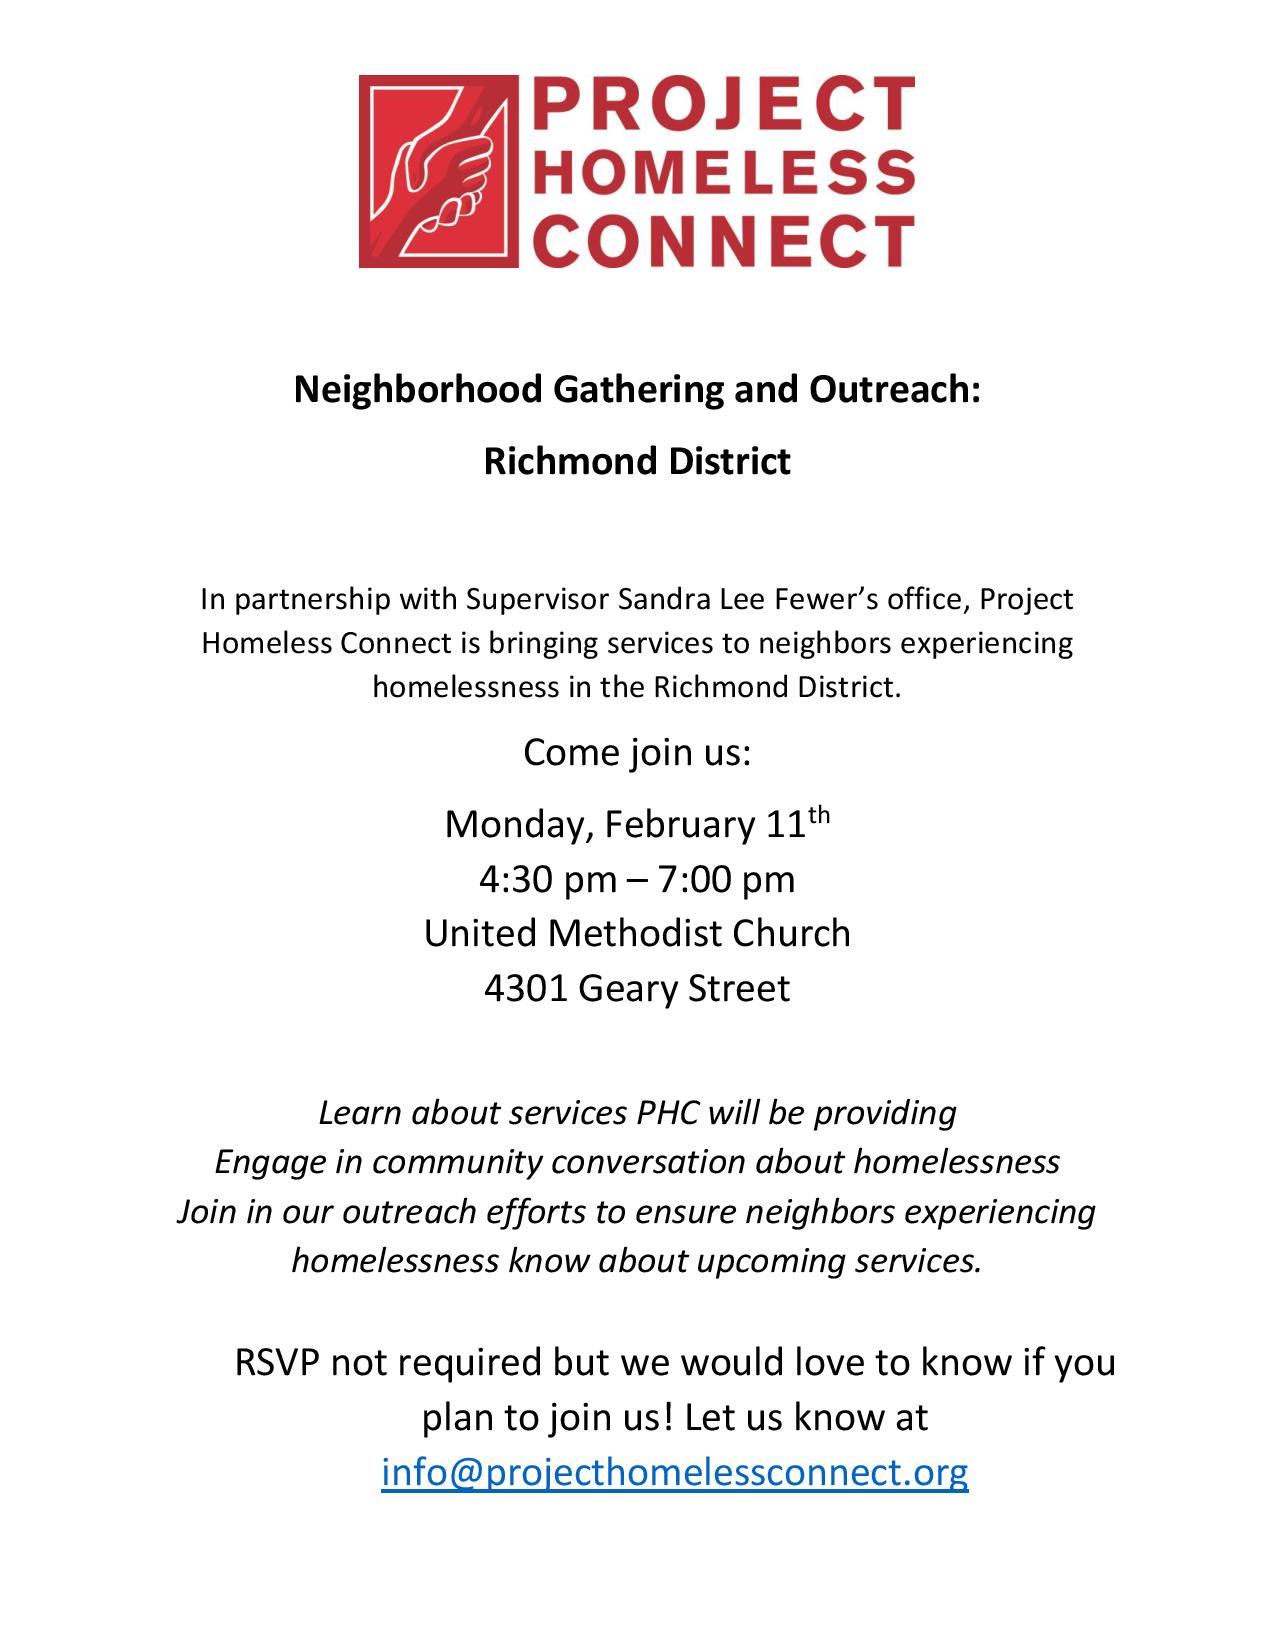 Neighborhood Gathering and Outreach_Richmond District 2.11.19-page-001.jpg